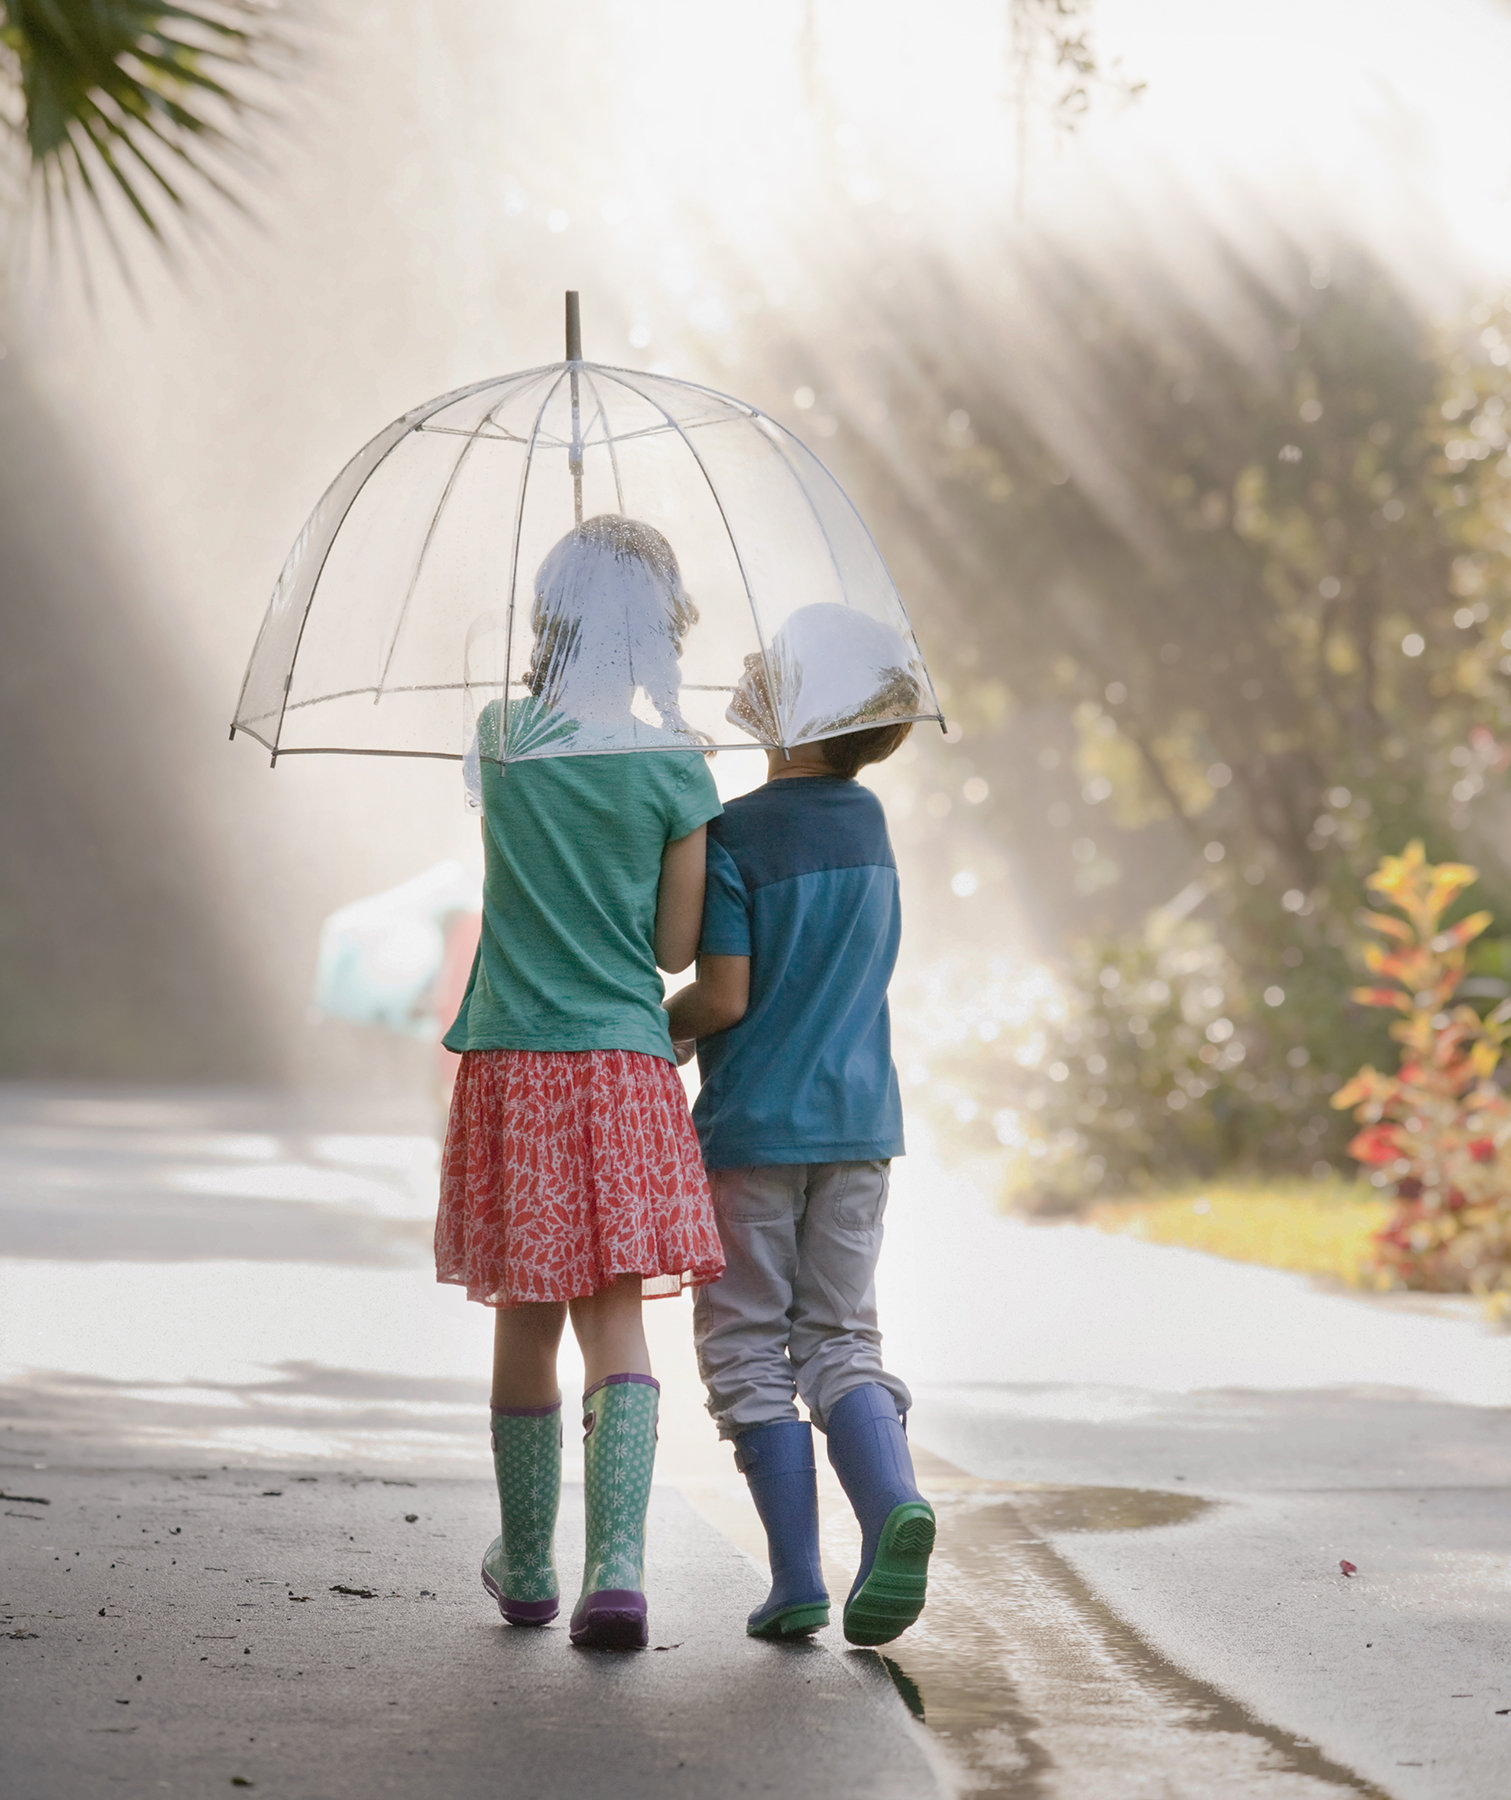 children-walking-umbrella-empathy